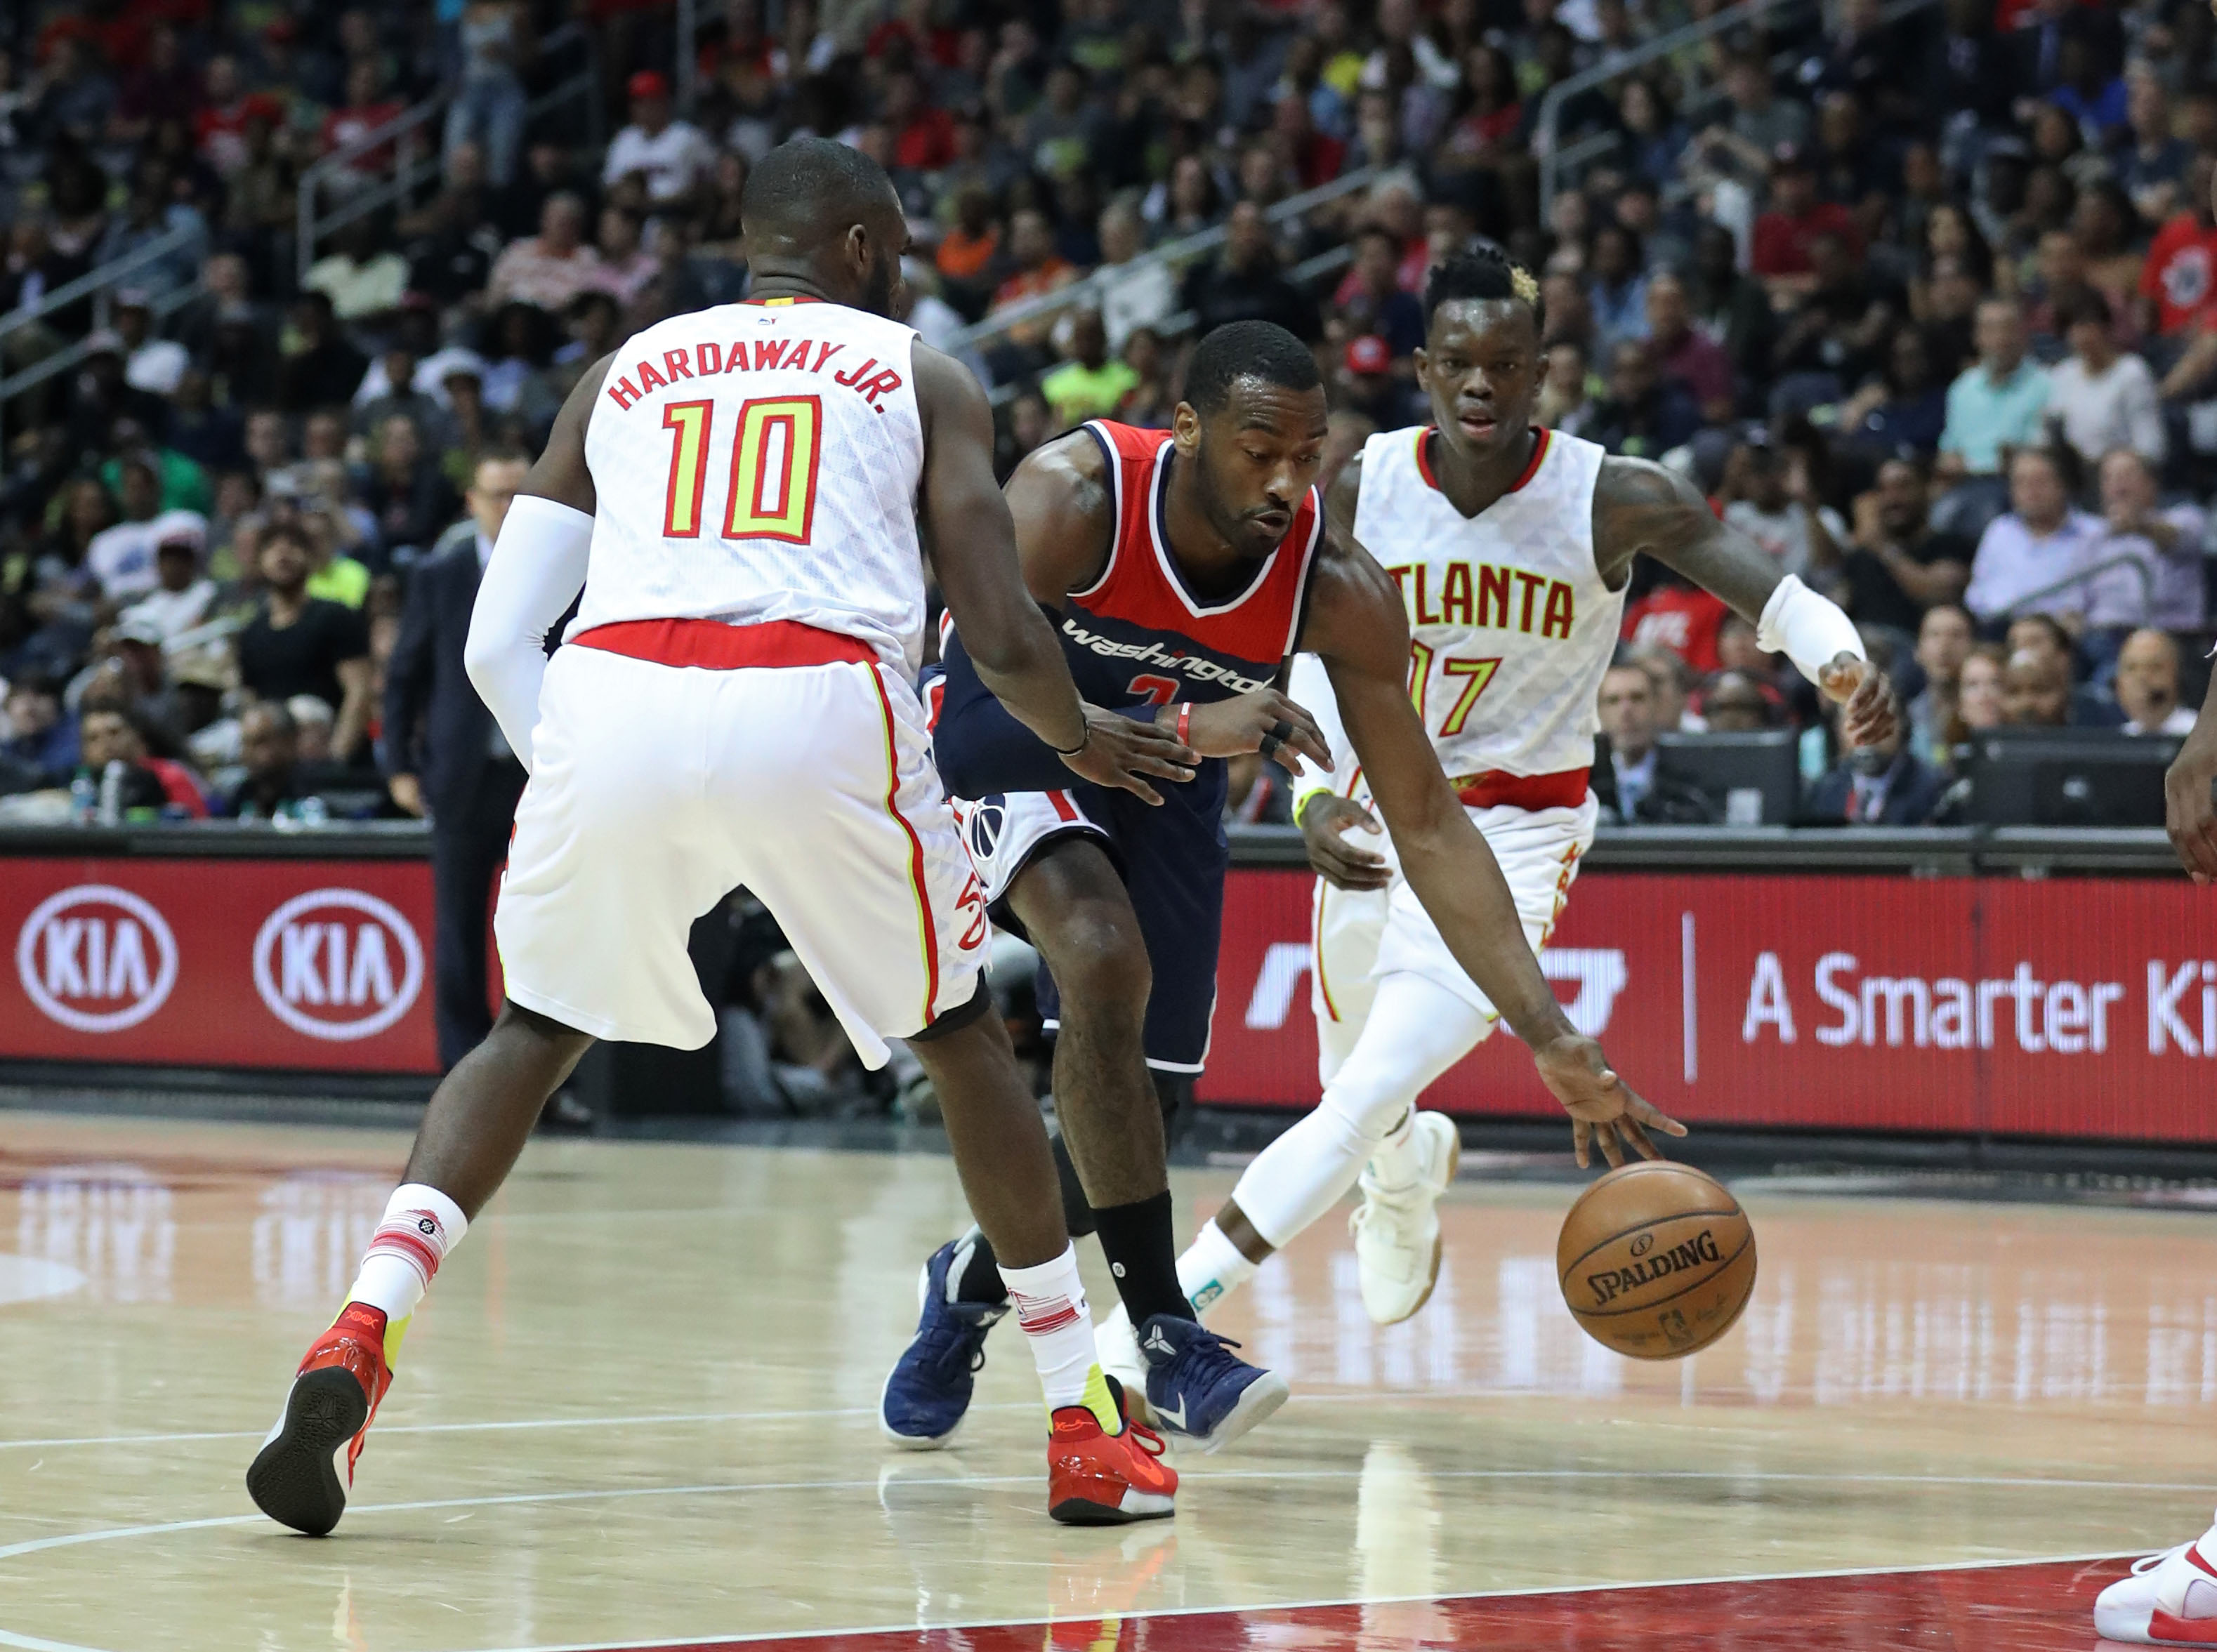 10026062-nba-playoffs-washington-wizards-at-atlanta-hawks